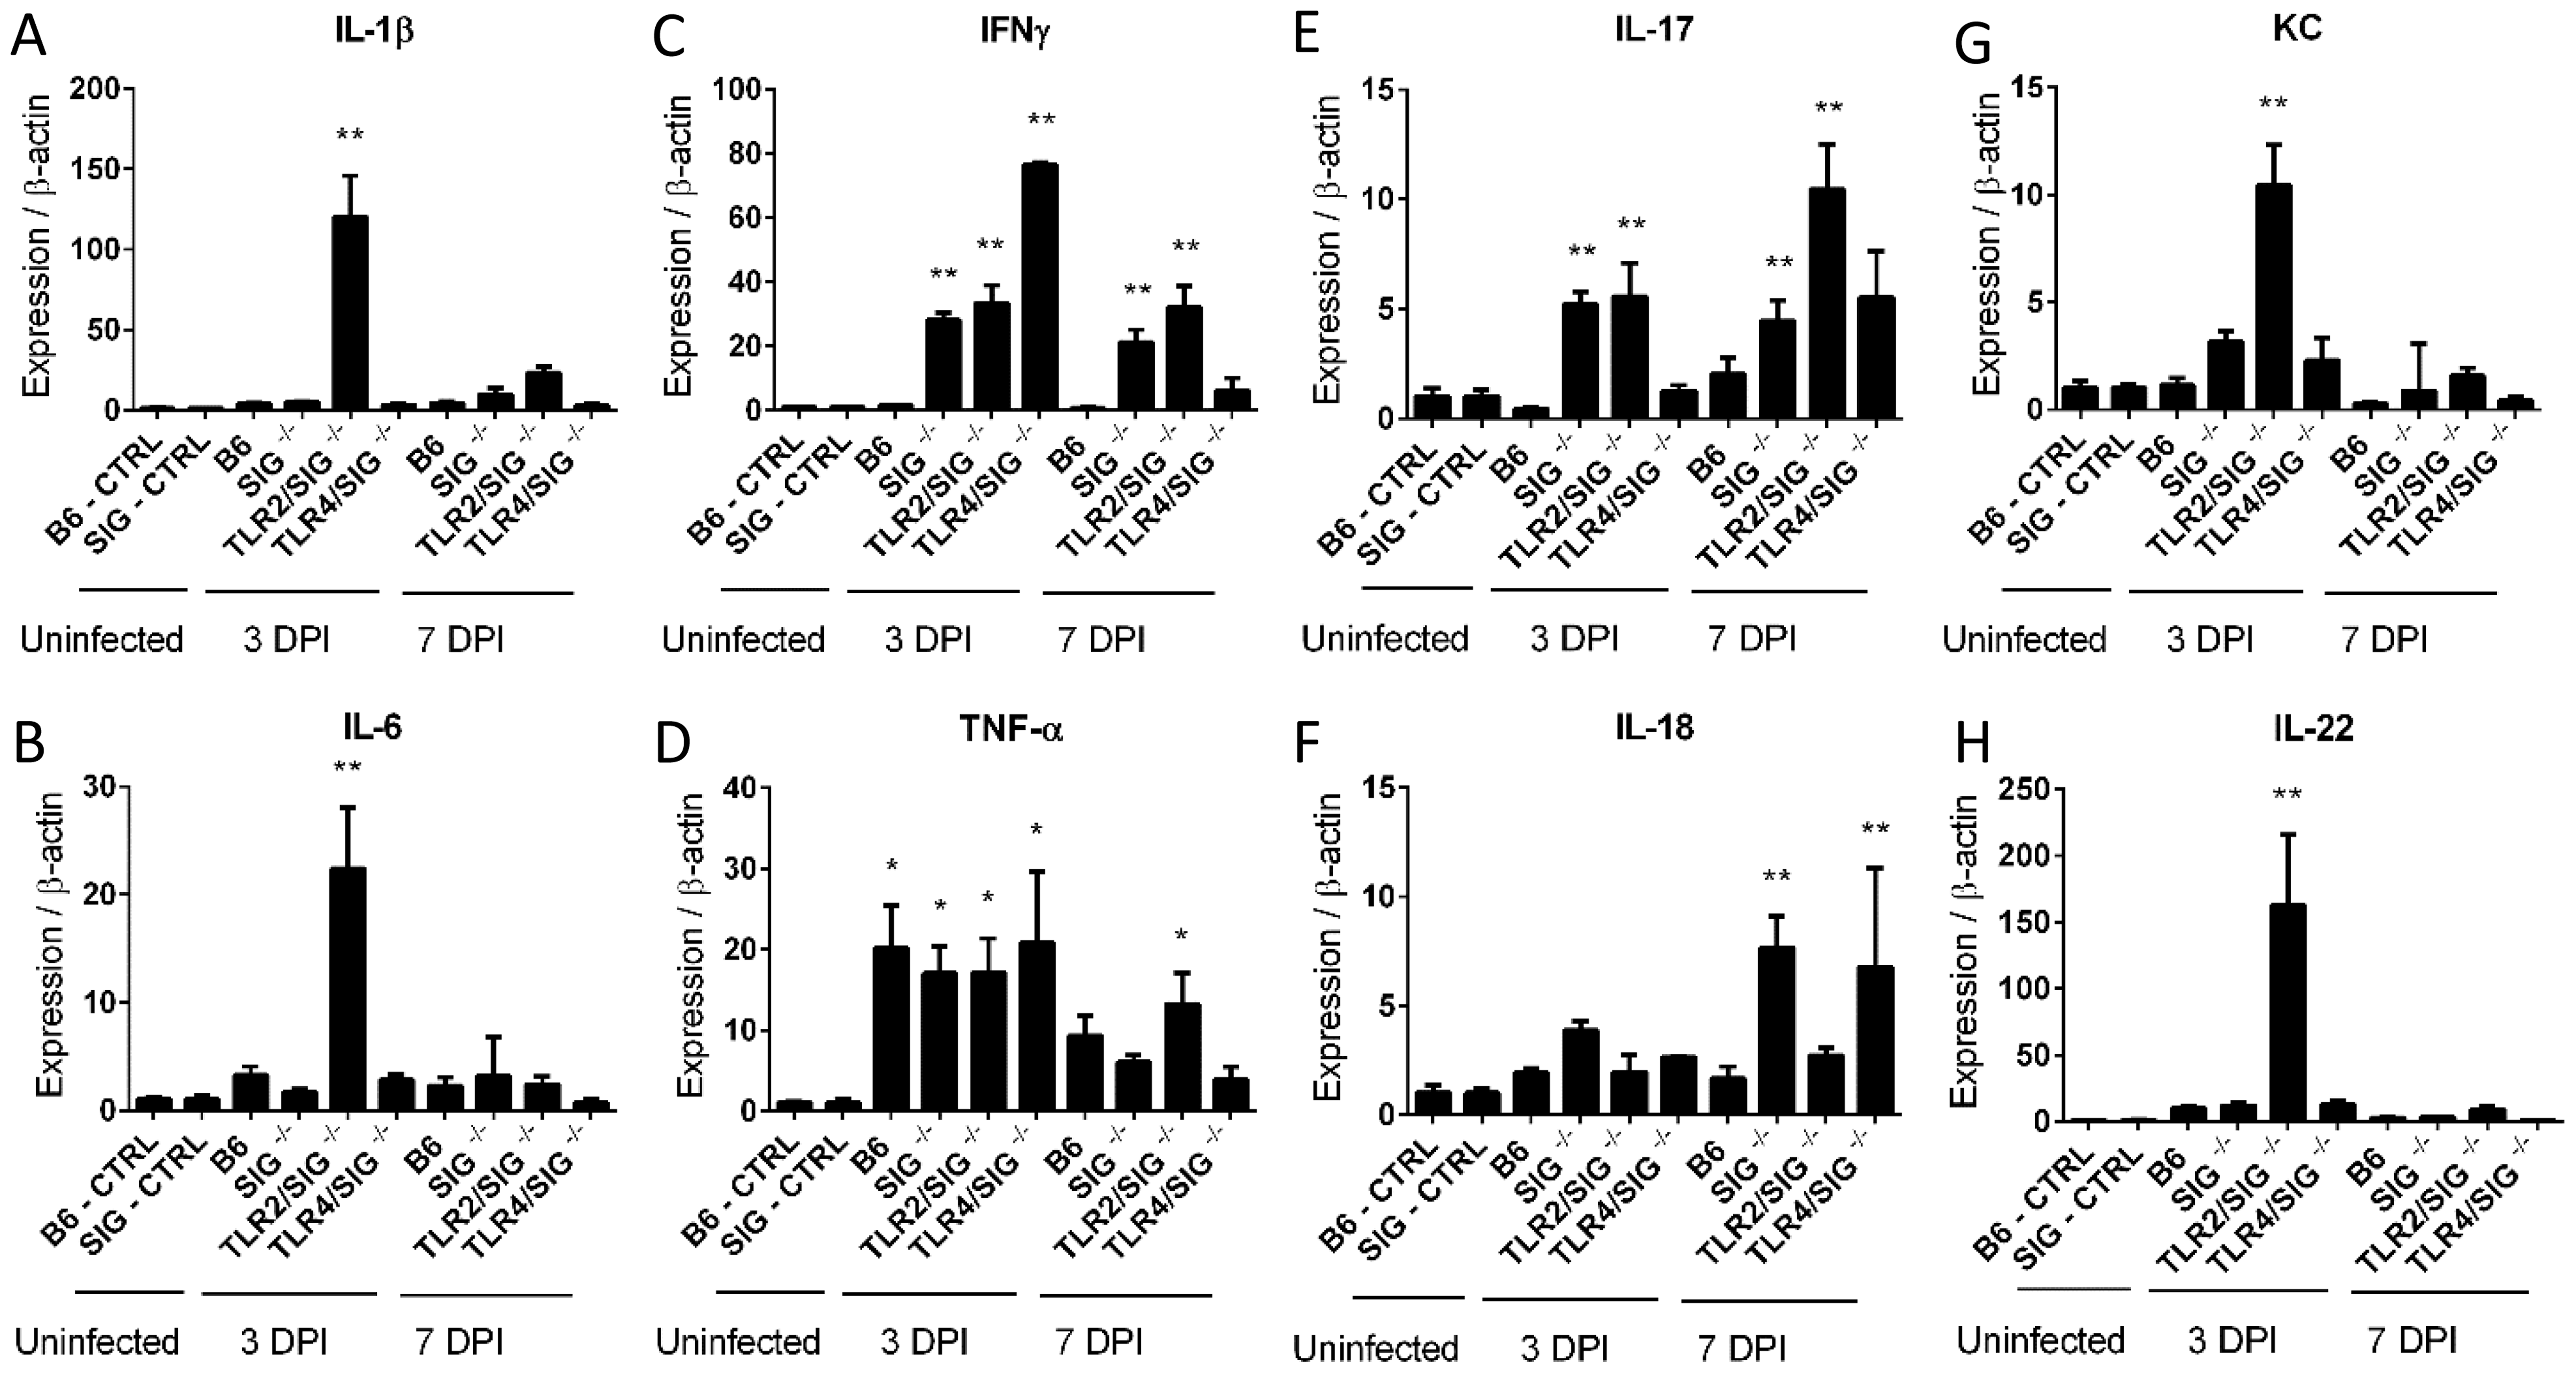 Cytokine production in infected mice.